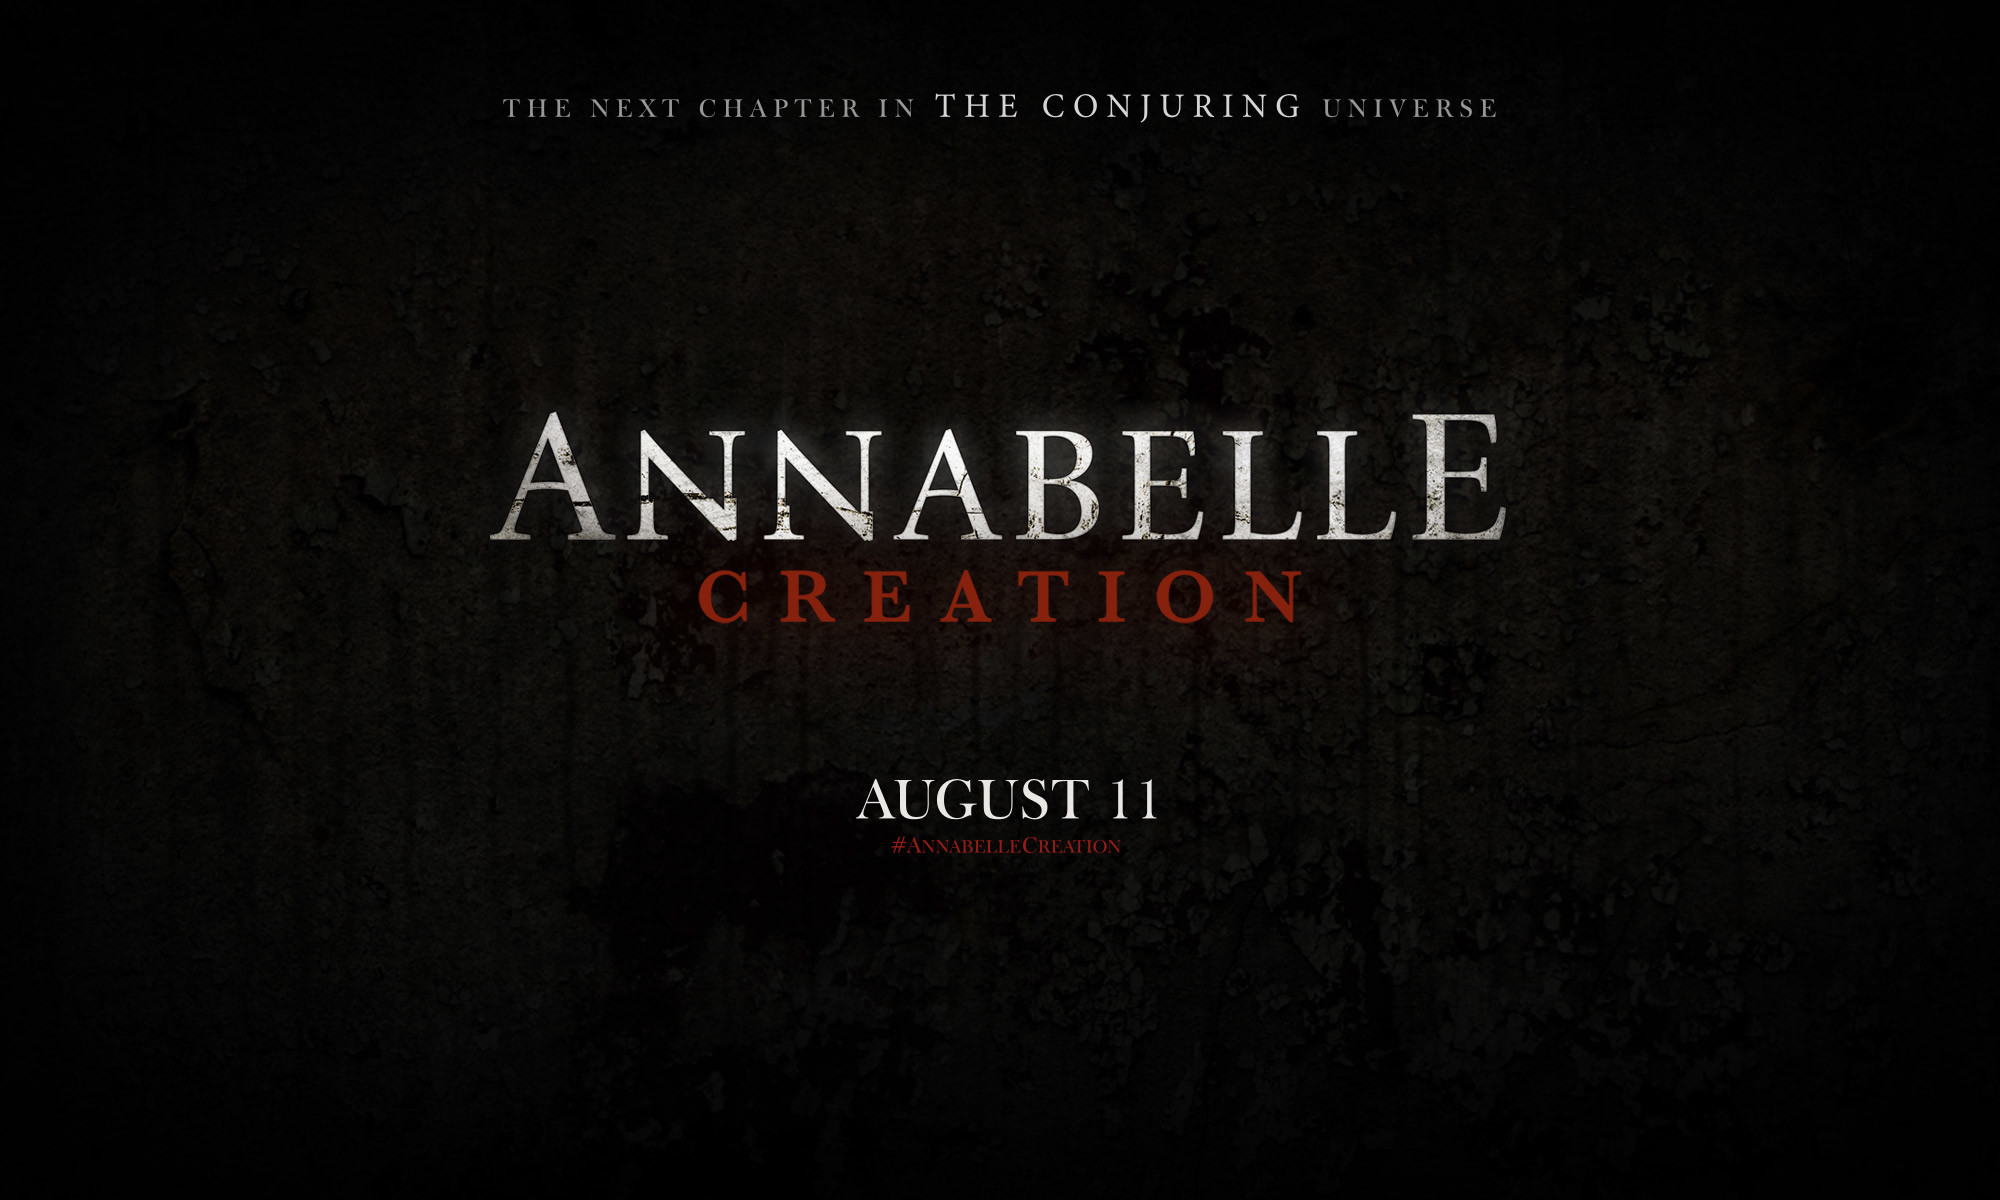 annabelle 2 download